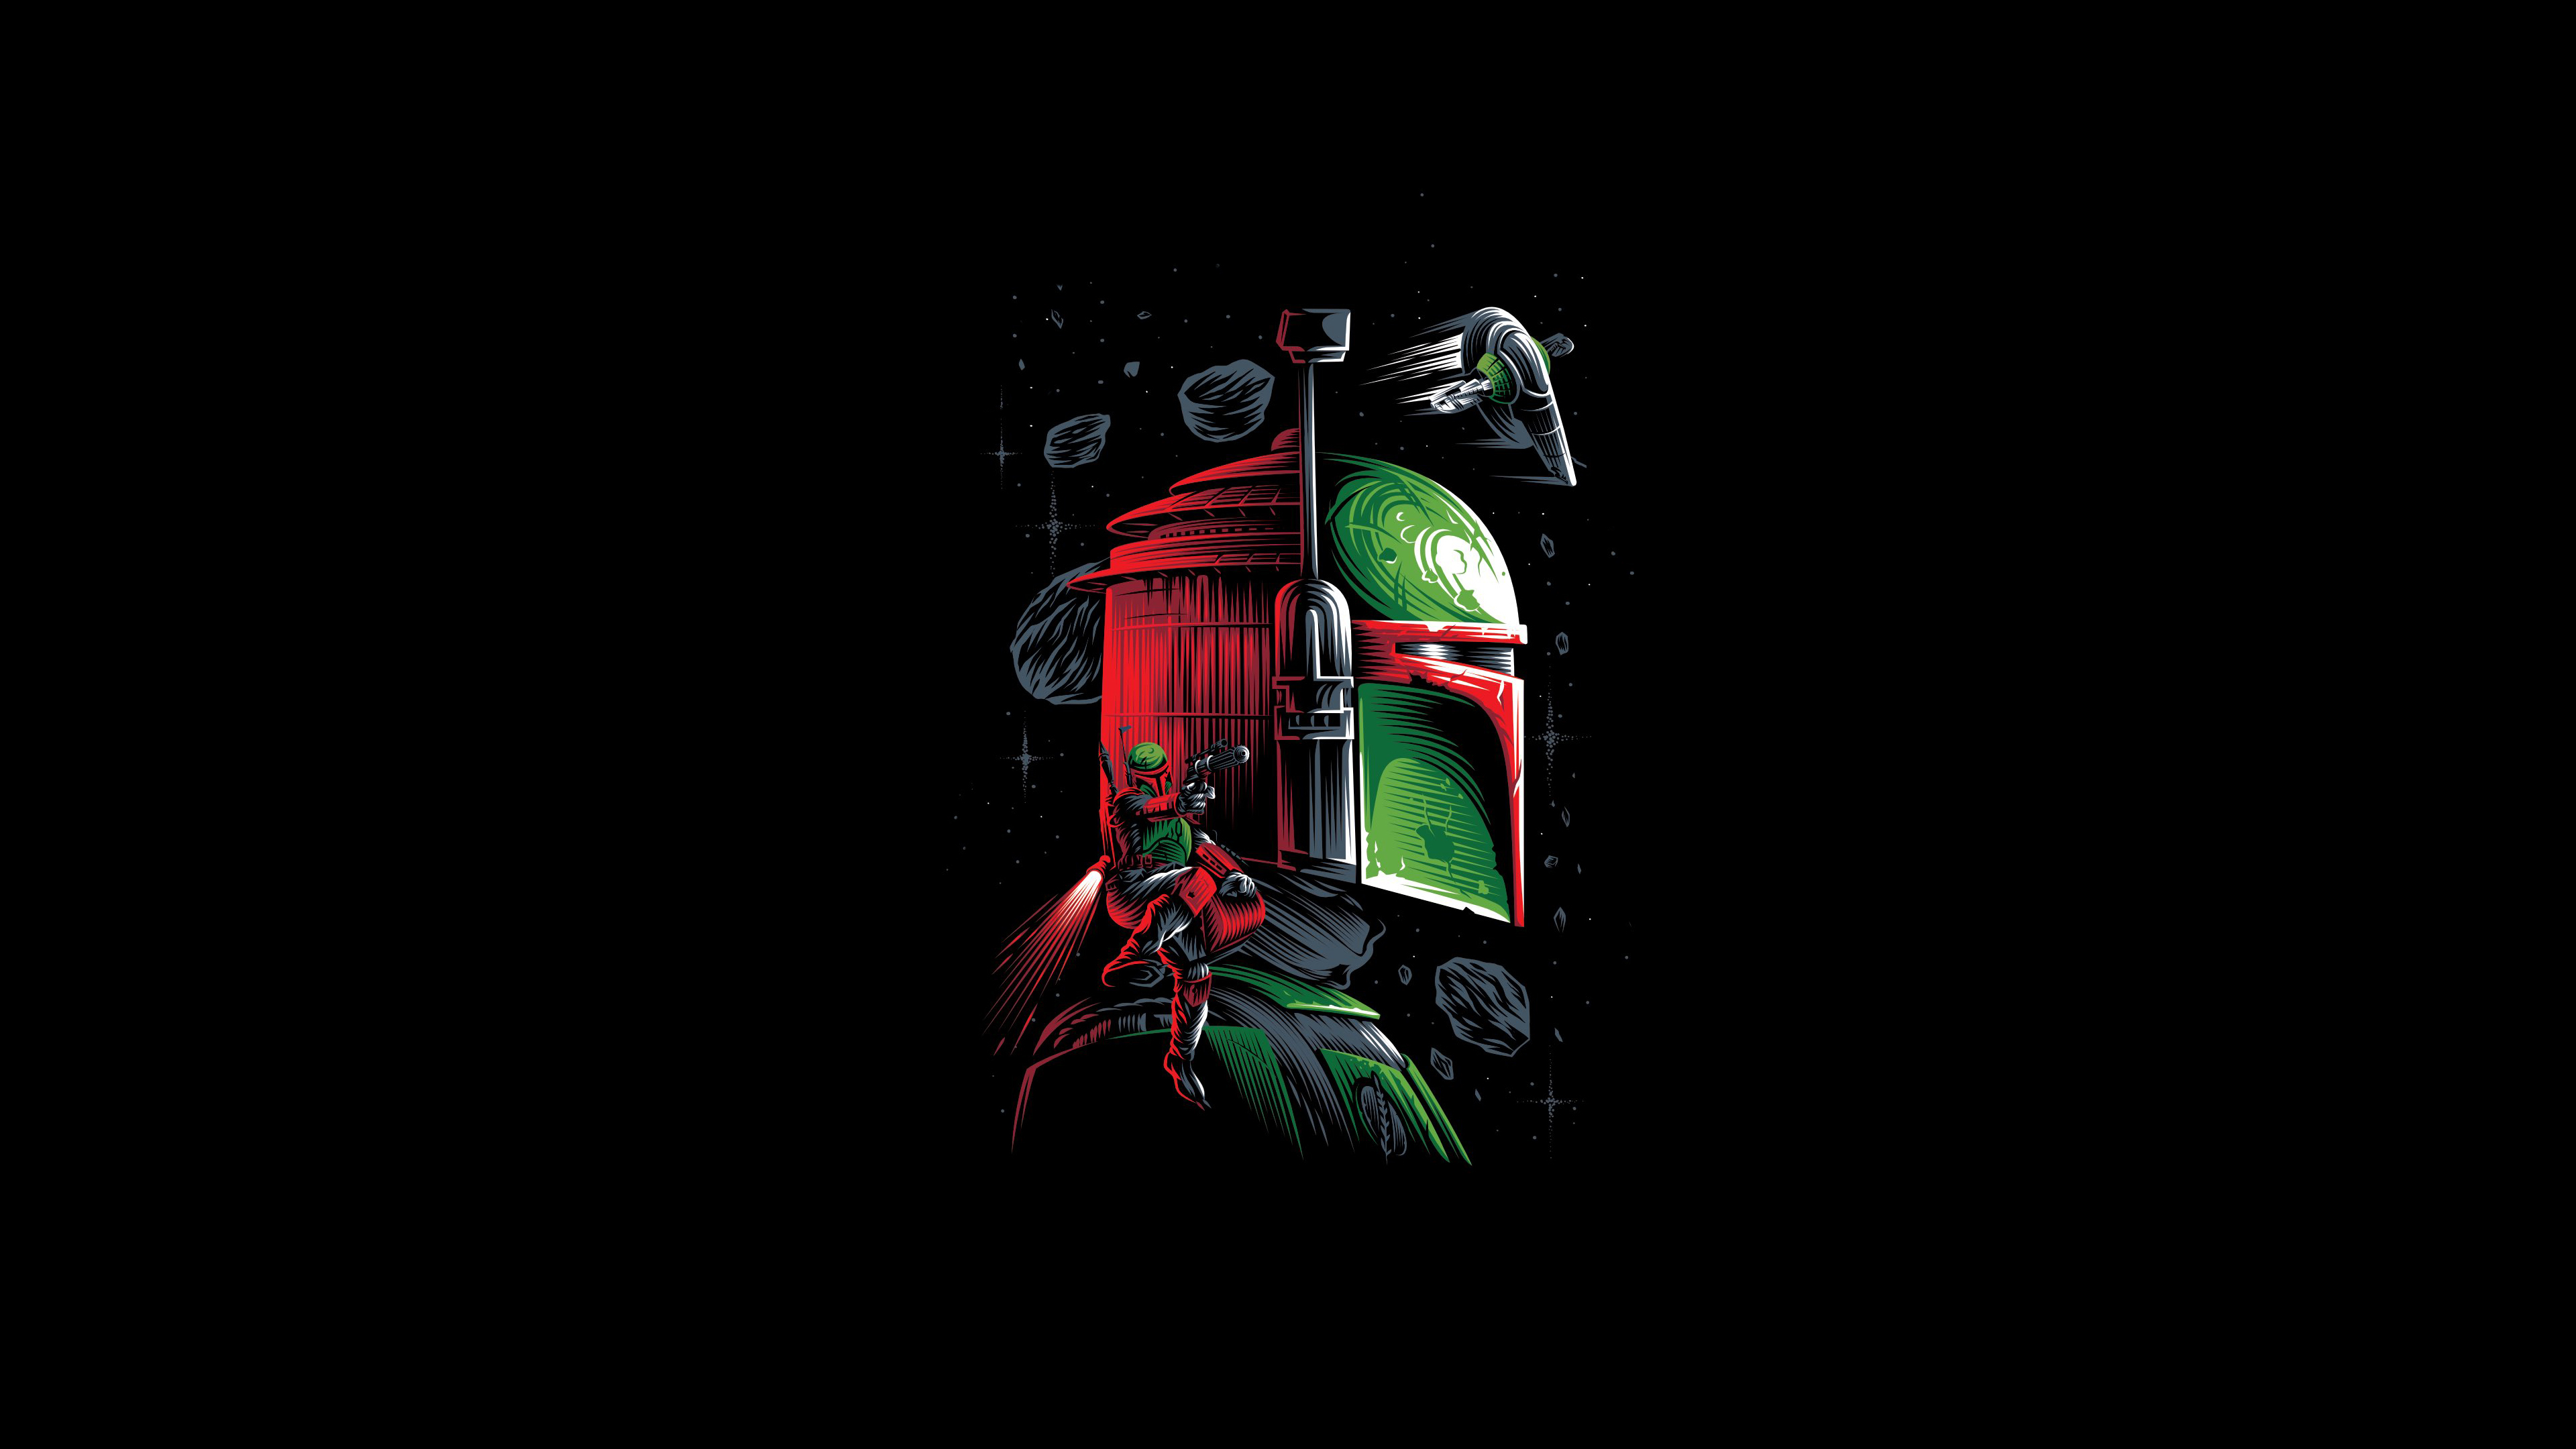 The Mandalorian Cool Wallpaper Hd Tv Series 4k Wallpapers Images Photos And Background